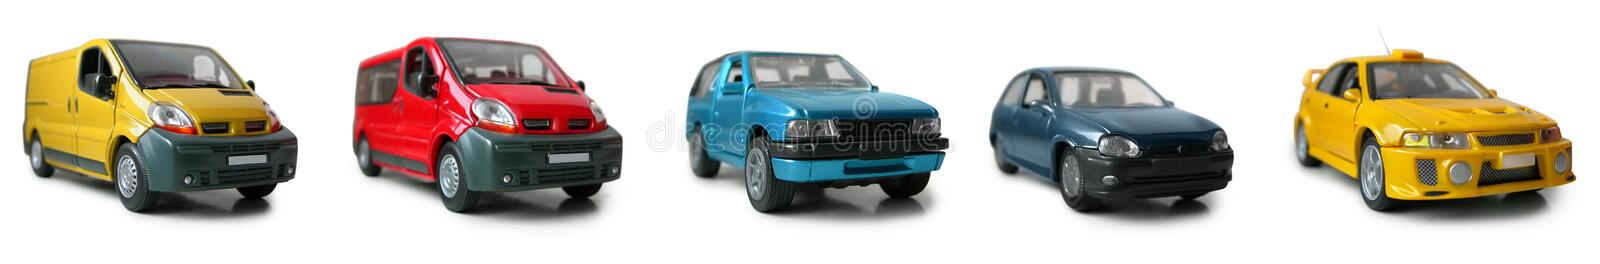 Download Car Models - Various Automobiles Stock Image - Image: 7784775